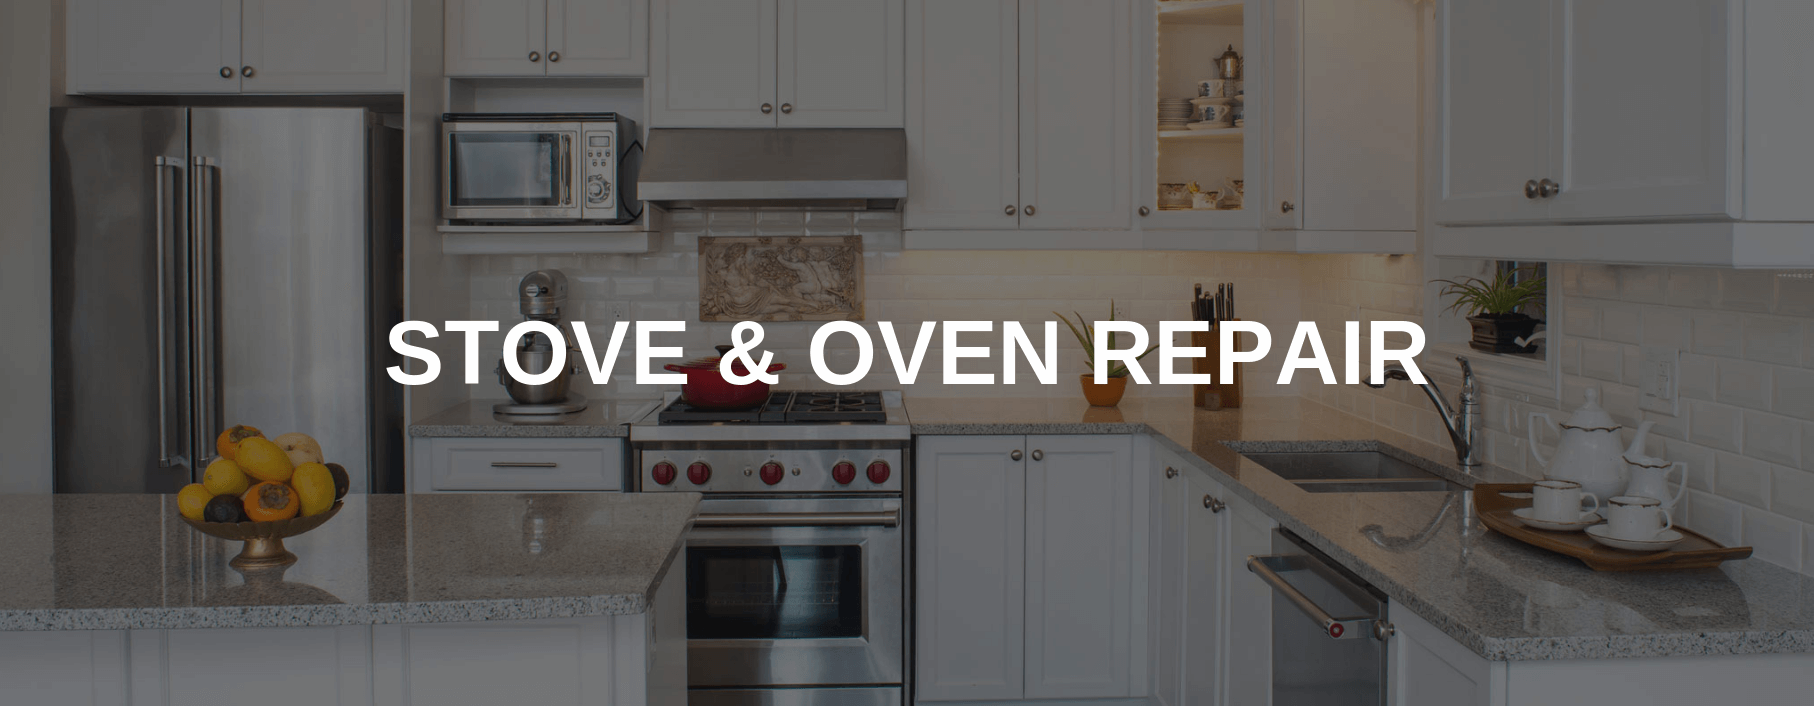 stove repair missouri city